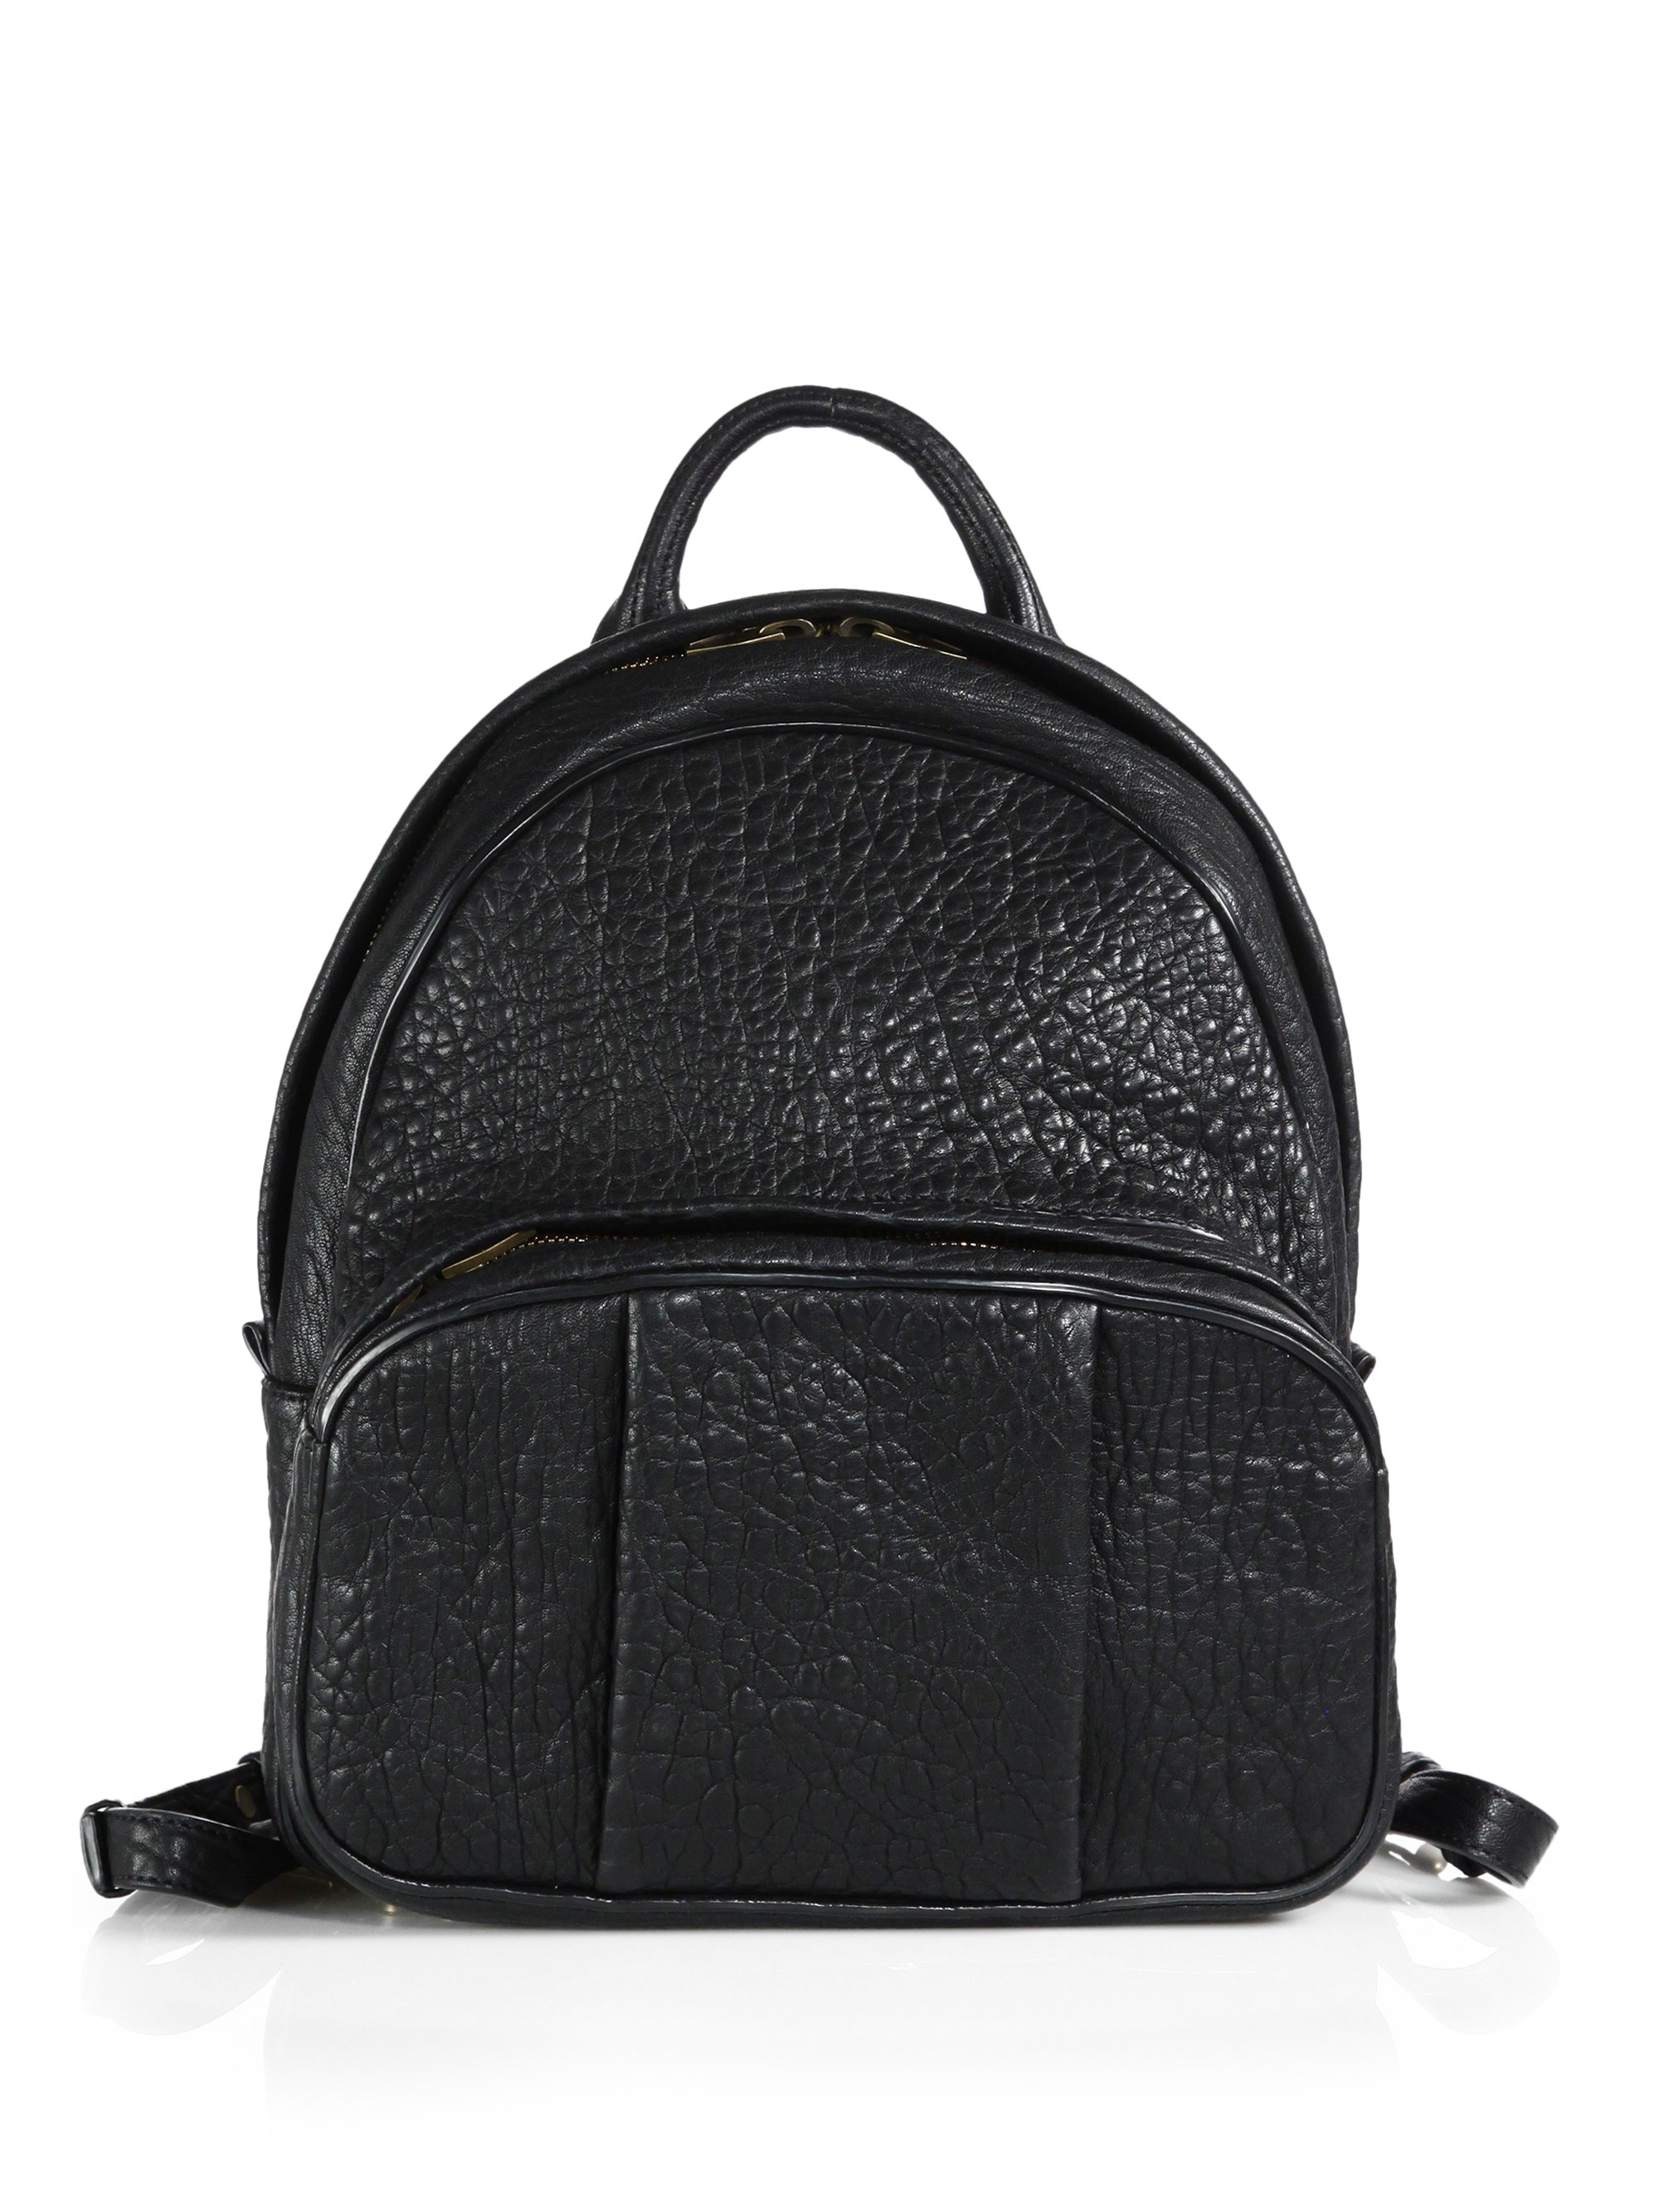 Leather Backpacks On Sale cIQAgT4o